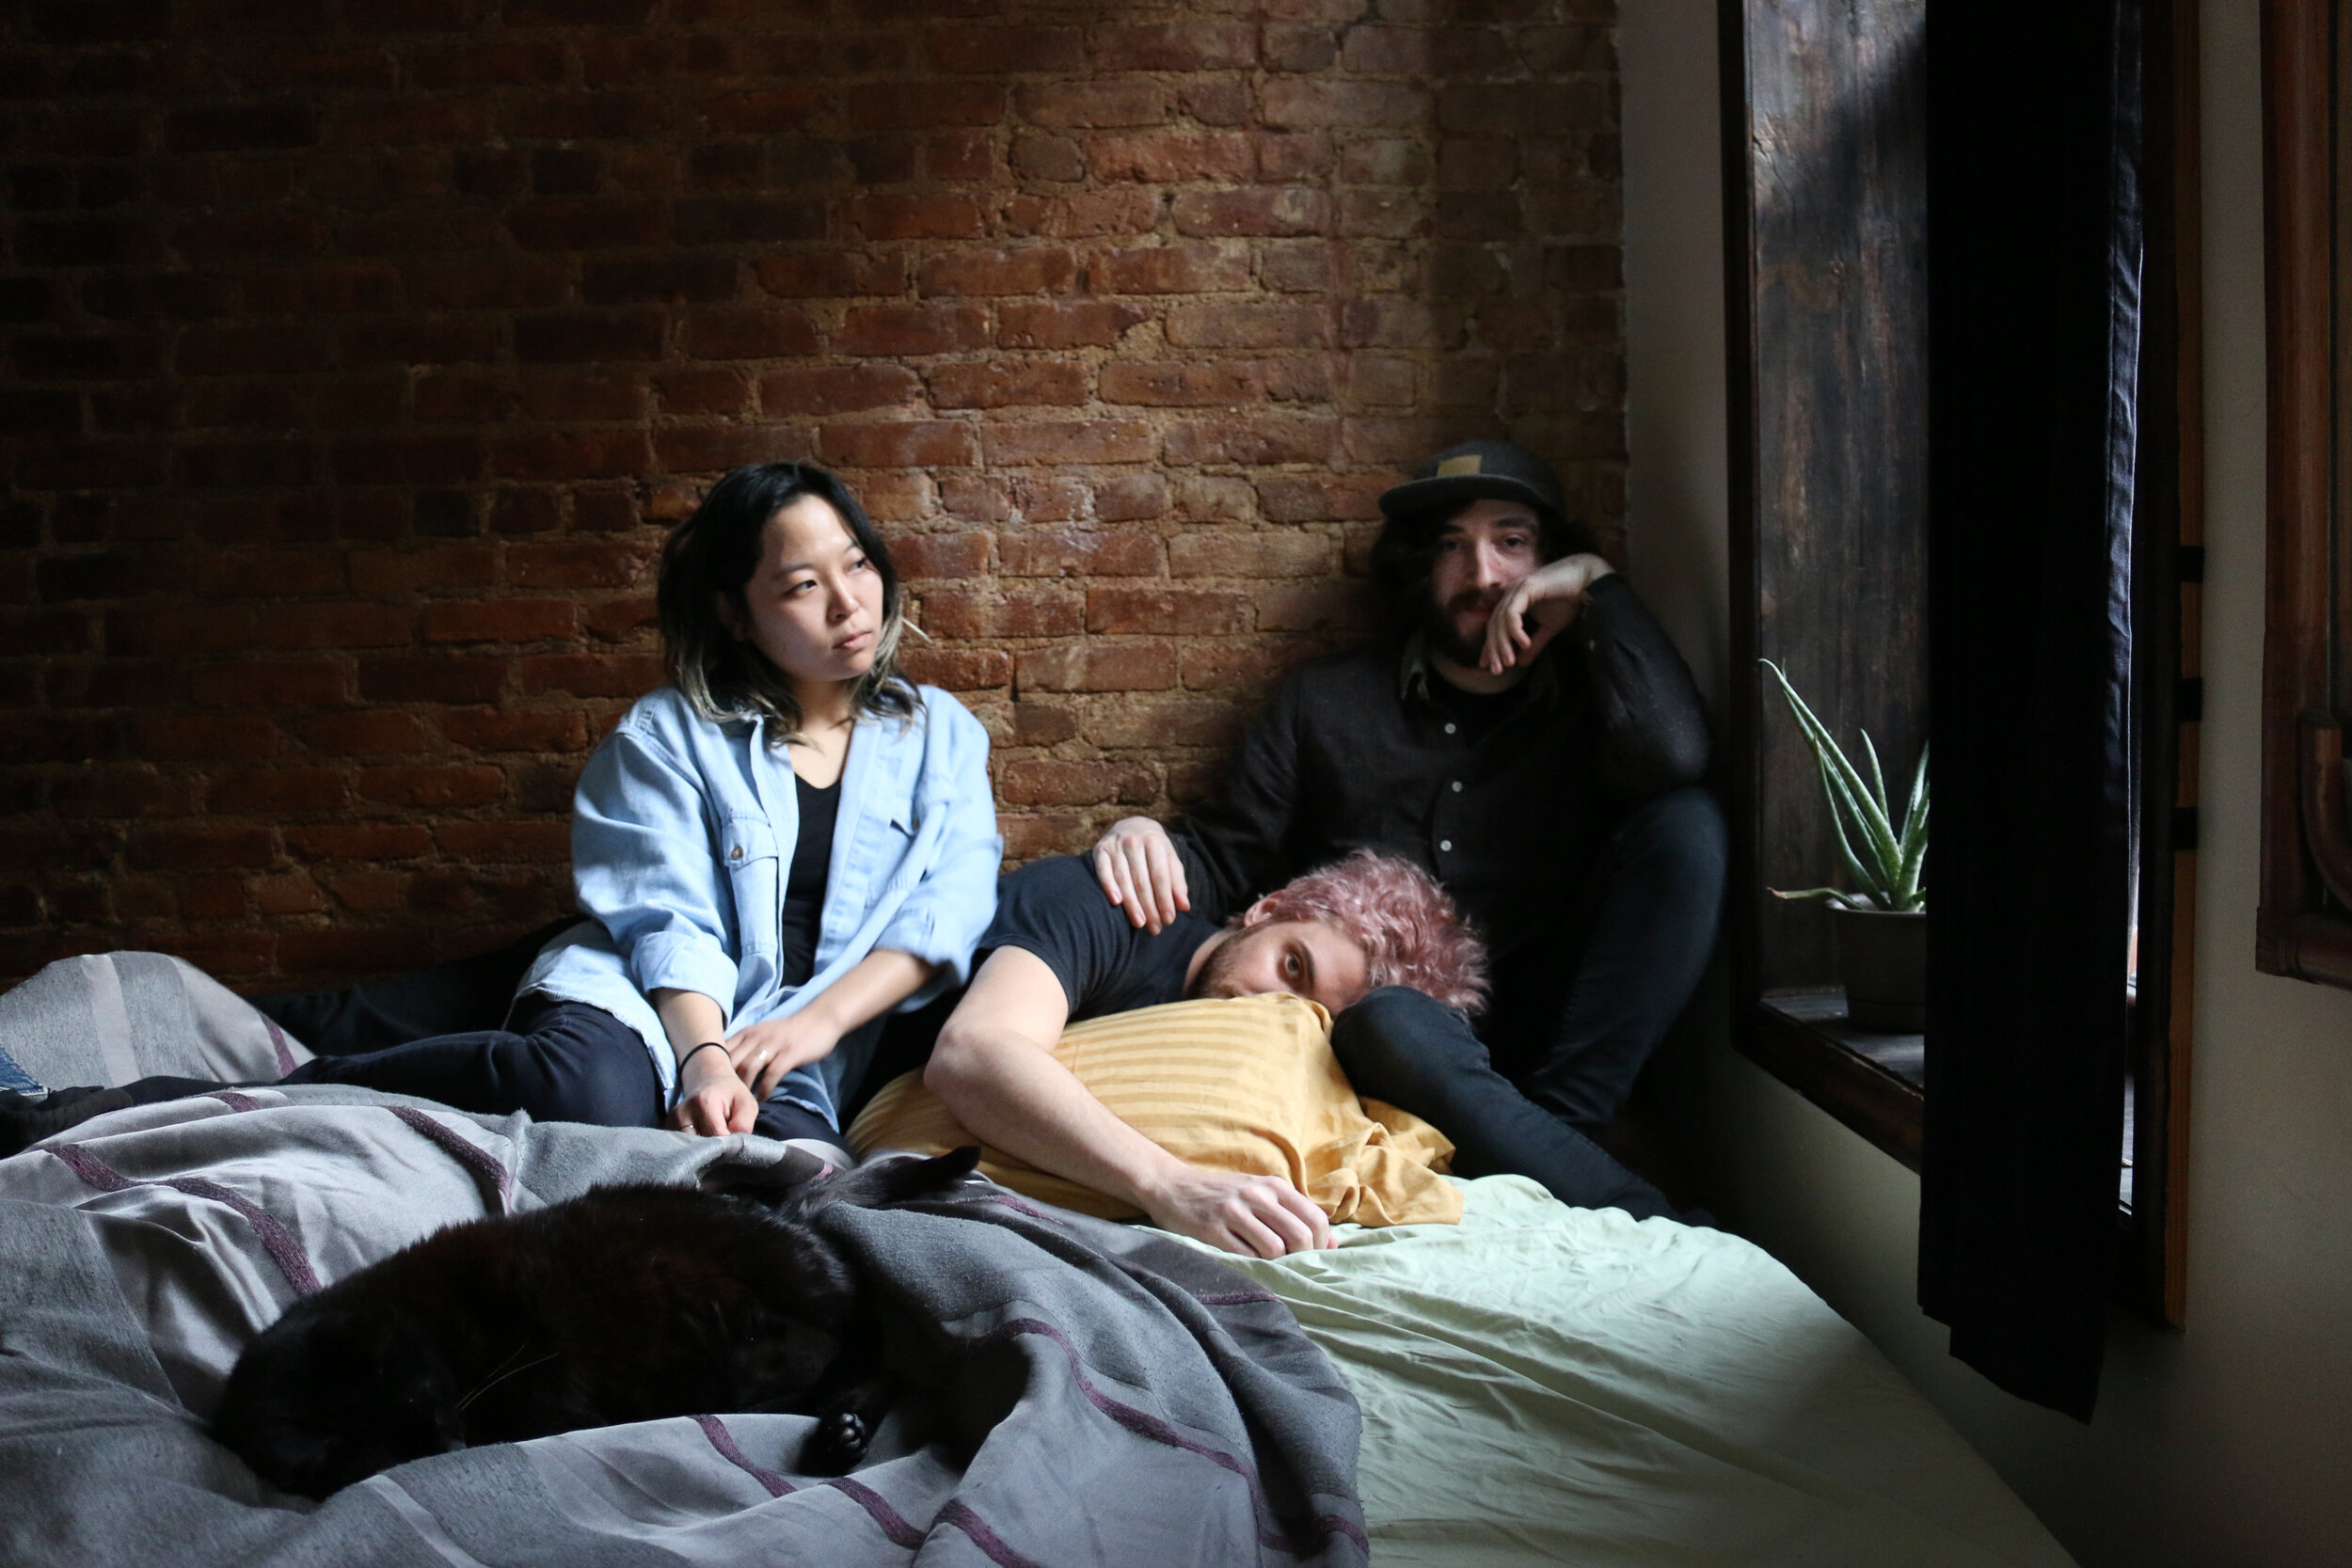 Haybaby - Haybaby is a very good band from Brooklyn, NY, that makes music for human beings. It is post-90s pre-death sometimes loud sometimes less so music for flipping out or being sad to. Vice's Noisey called Haybaby's 2015 LP Sleepy Kids